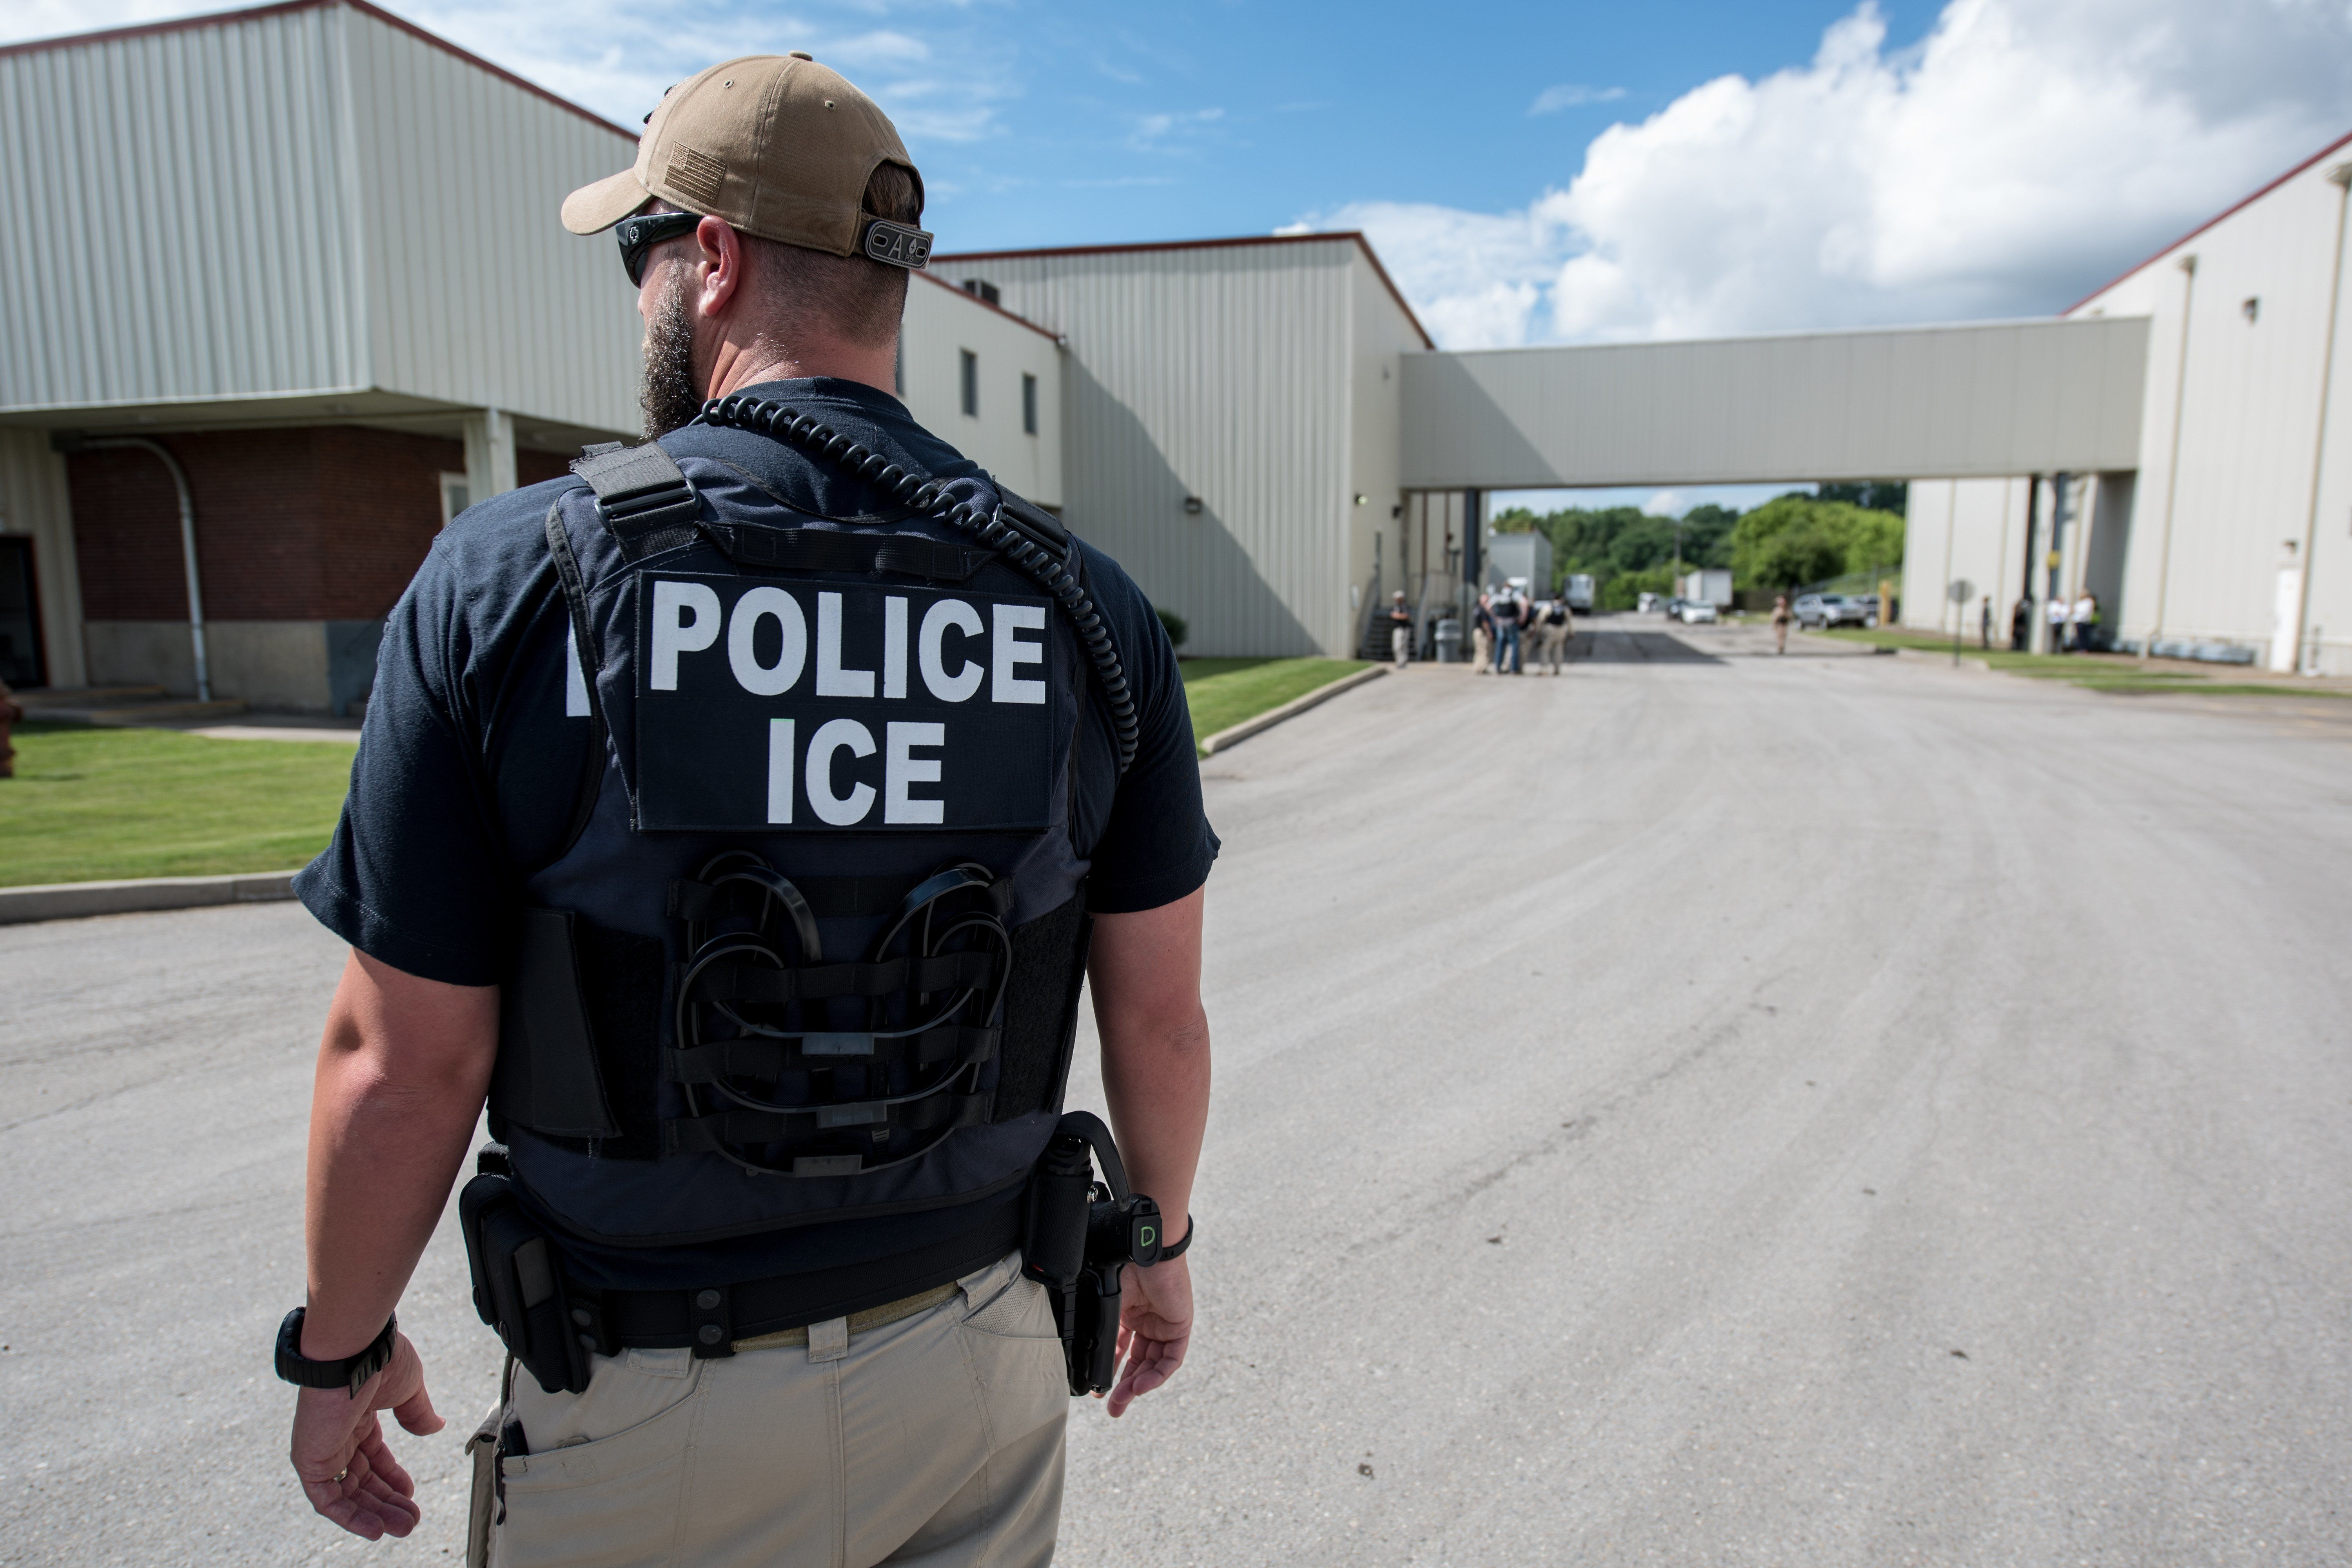 US Immigration and Customs Enforcement's (ICE) special agent preparing to arrest alleged immigration violators at Fresh Mark, Salem, June 19, 2018. Image courtesy ICE ICE / U.S. Immigration and Customs Enforcement. (Photo by Smith Collection/Gado/Getty Images)